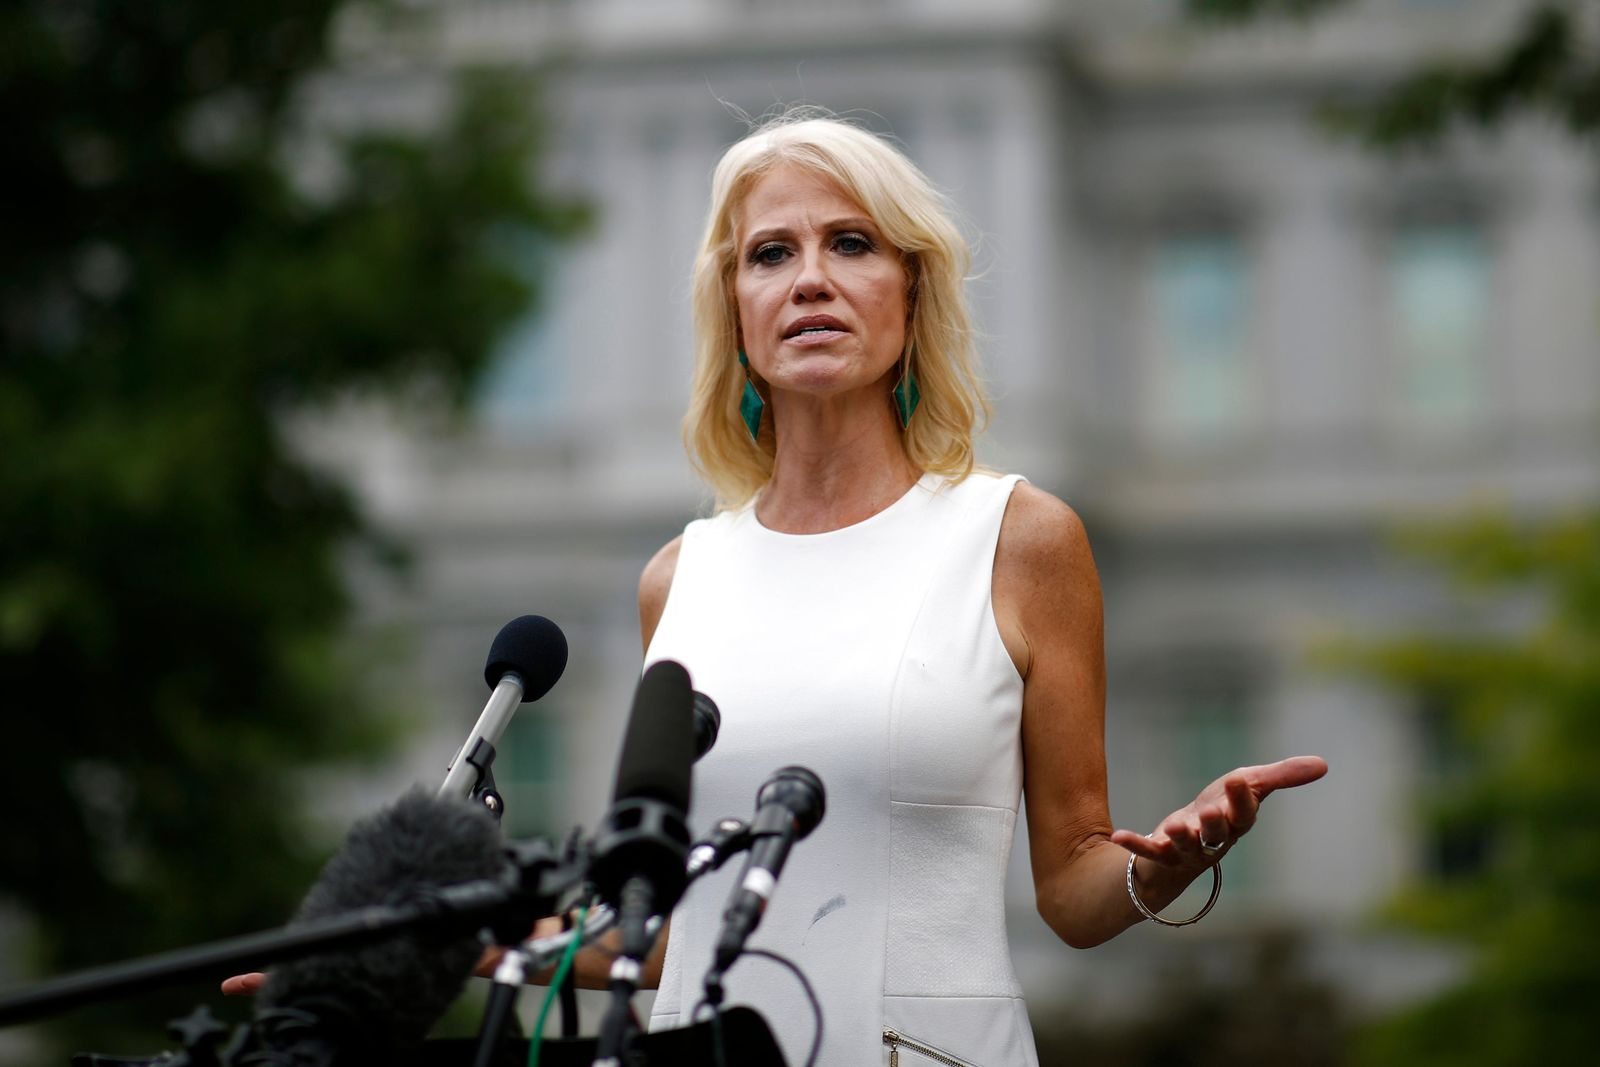 Counselor to the President Kellyanne Conway speaks with reporters outside the White House, Wednesday, Aug. 21, 2019, in Washington. Mindful of his lingering gap with women voters, President Trump's re-election campaign has female surrogates fanning out across the country in an effort to identify supporters who can help change minds. They'll be leading volunteer training sessions in 13 battleground states, including Florida, North Carolina, Michigan, Pennsylvania, Georgia and Ohio. It's a recognition of the president's persistent deficit with women that could be made worse by an economic slowdown.  (AP Photo/Patrick Semansky)